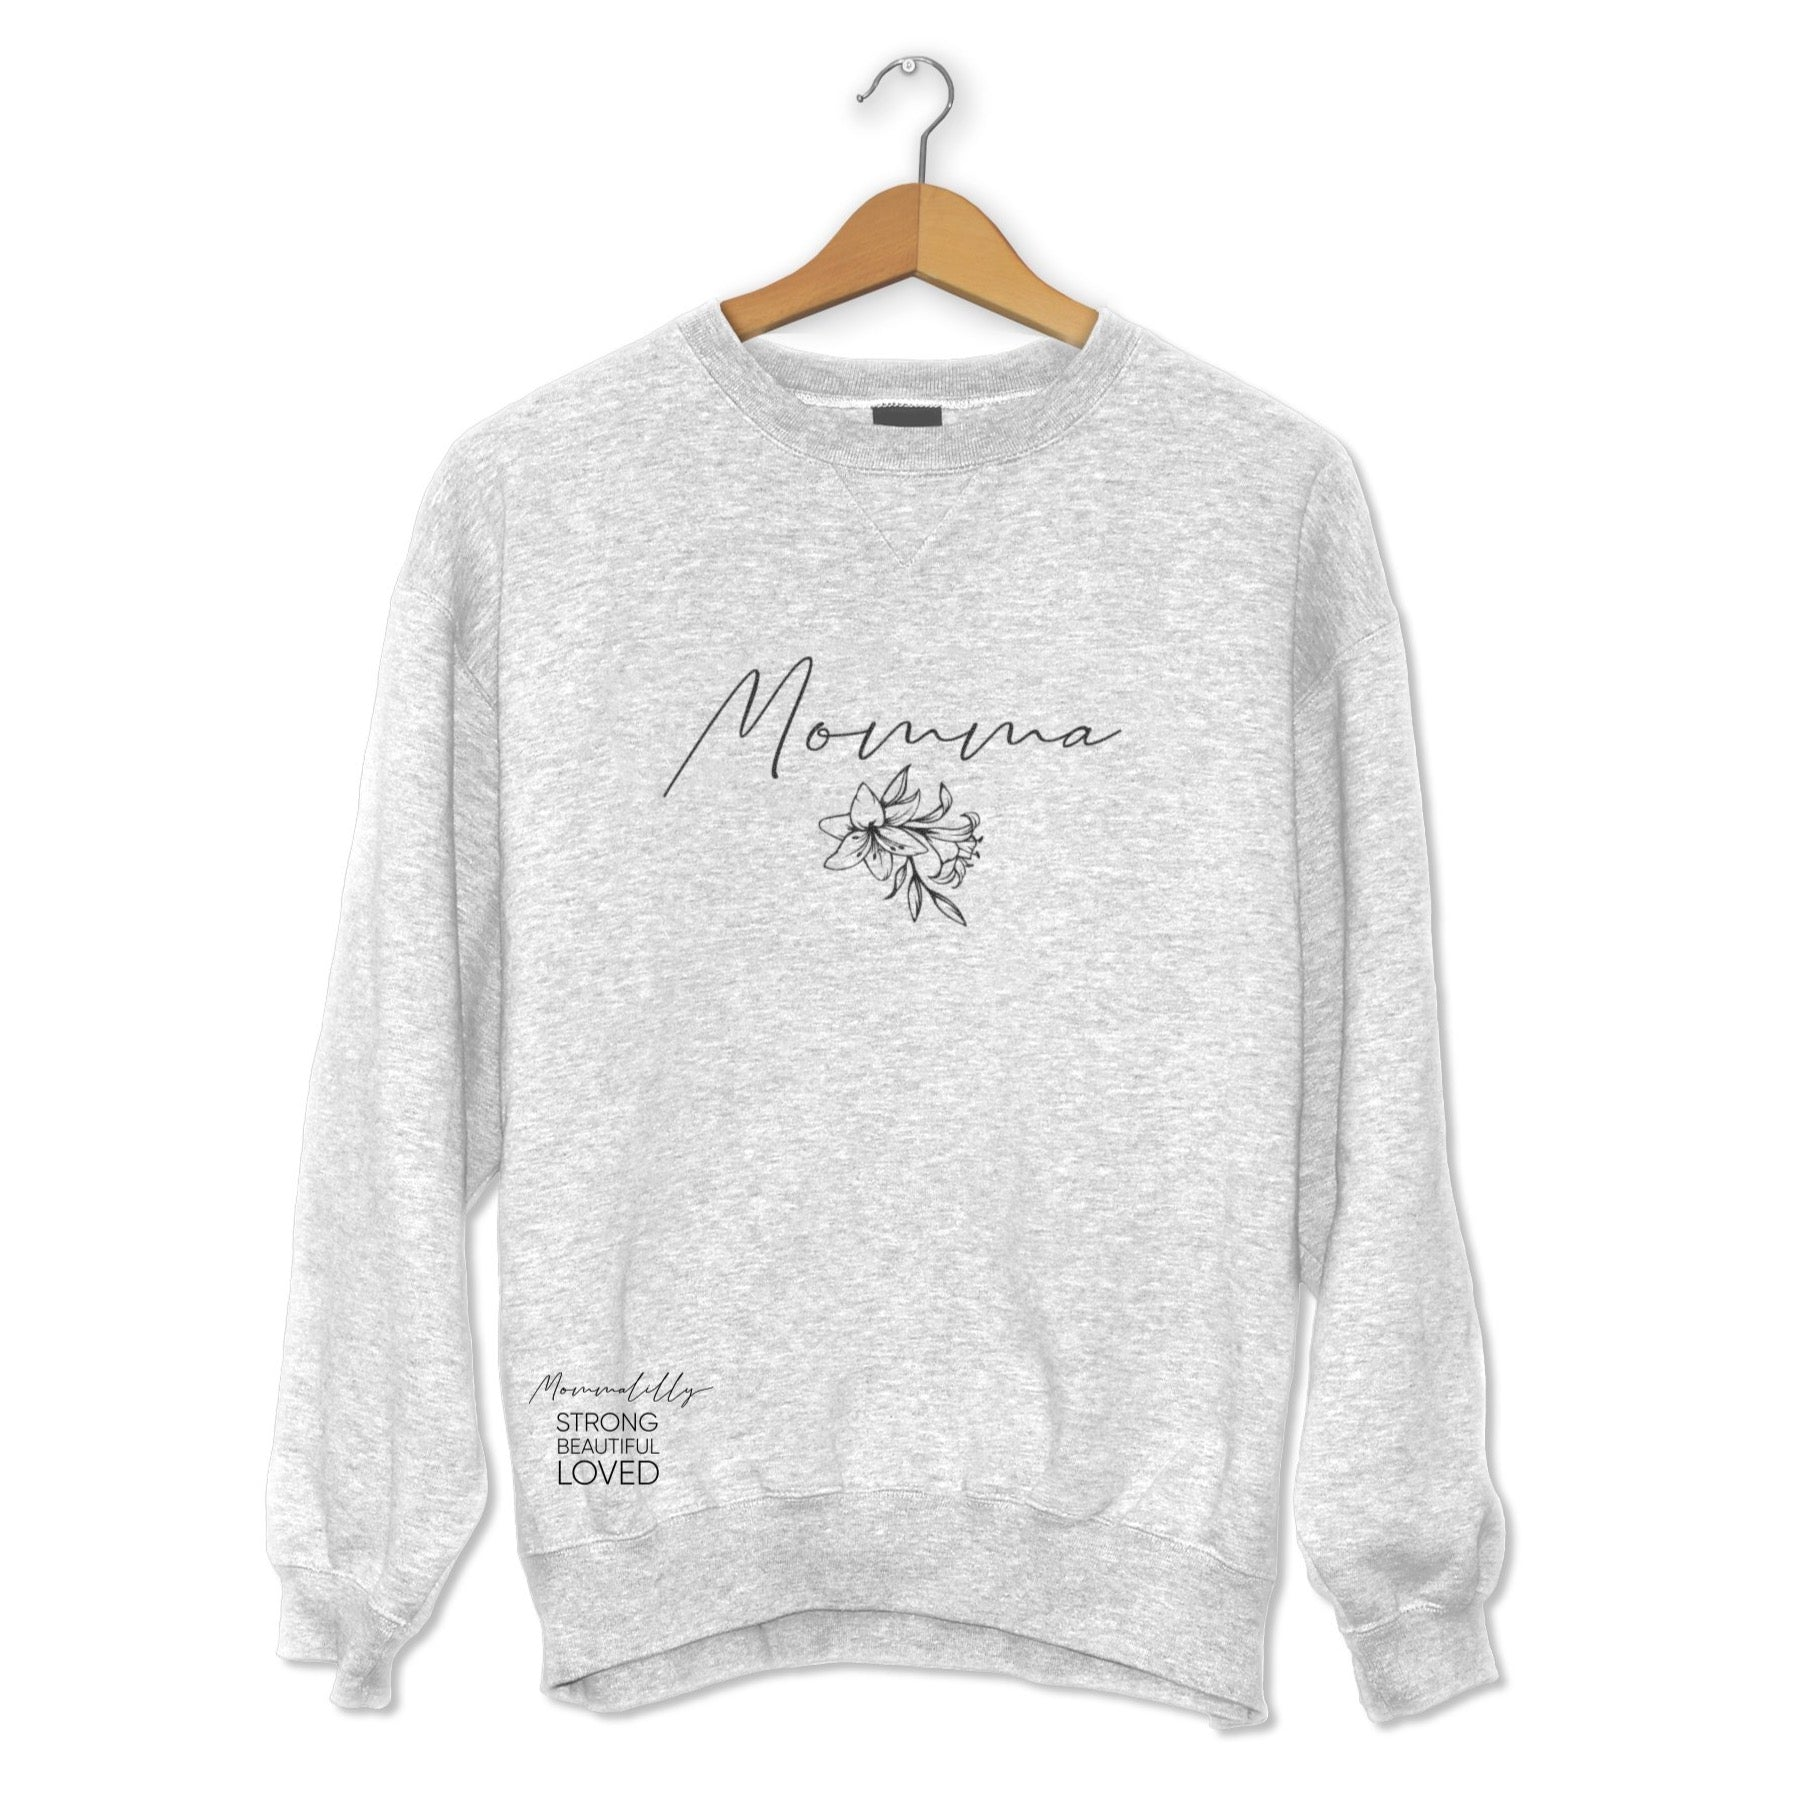 Mommalilly Crew Long Sleeve Momma Sweater